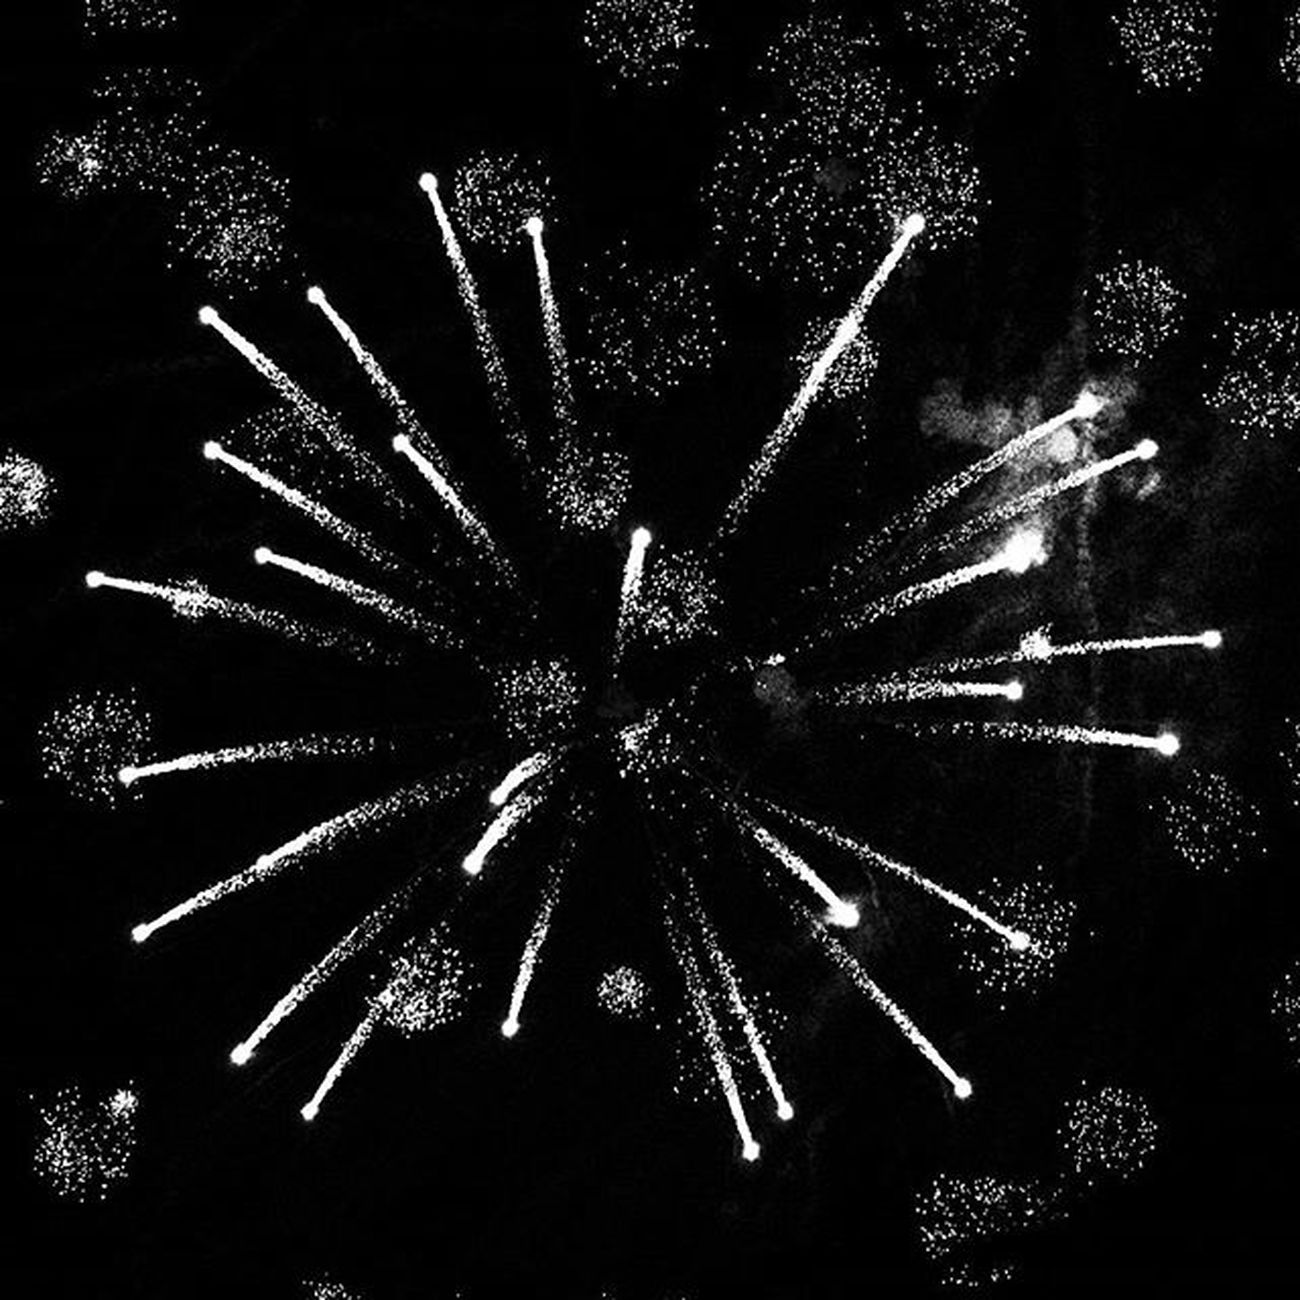 Fireworks Westerville Ohio July4th Blackandwhite Bnw_society Bnw Insta_bw Bw Bw_lover Blackandwhitephotography Monochrome